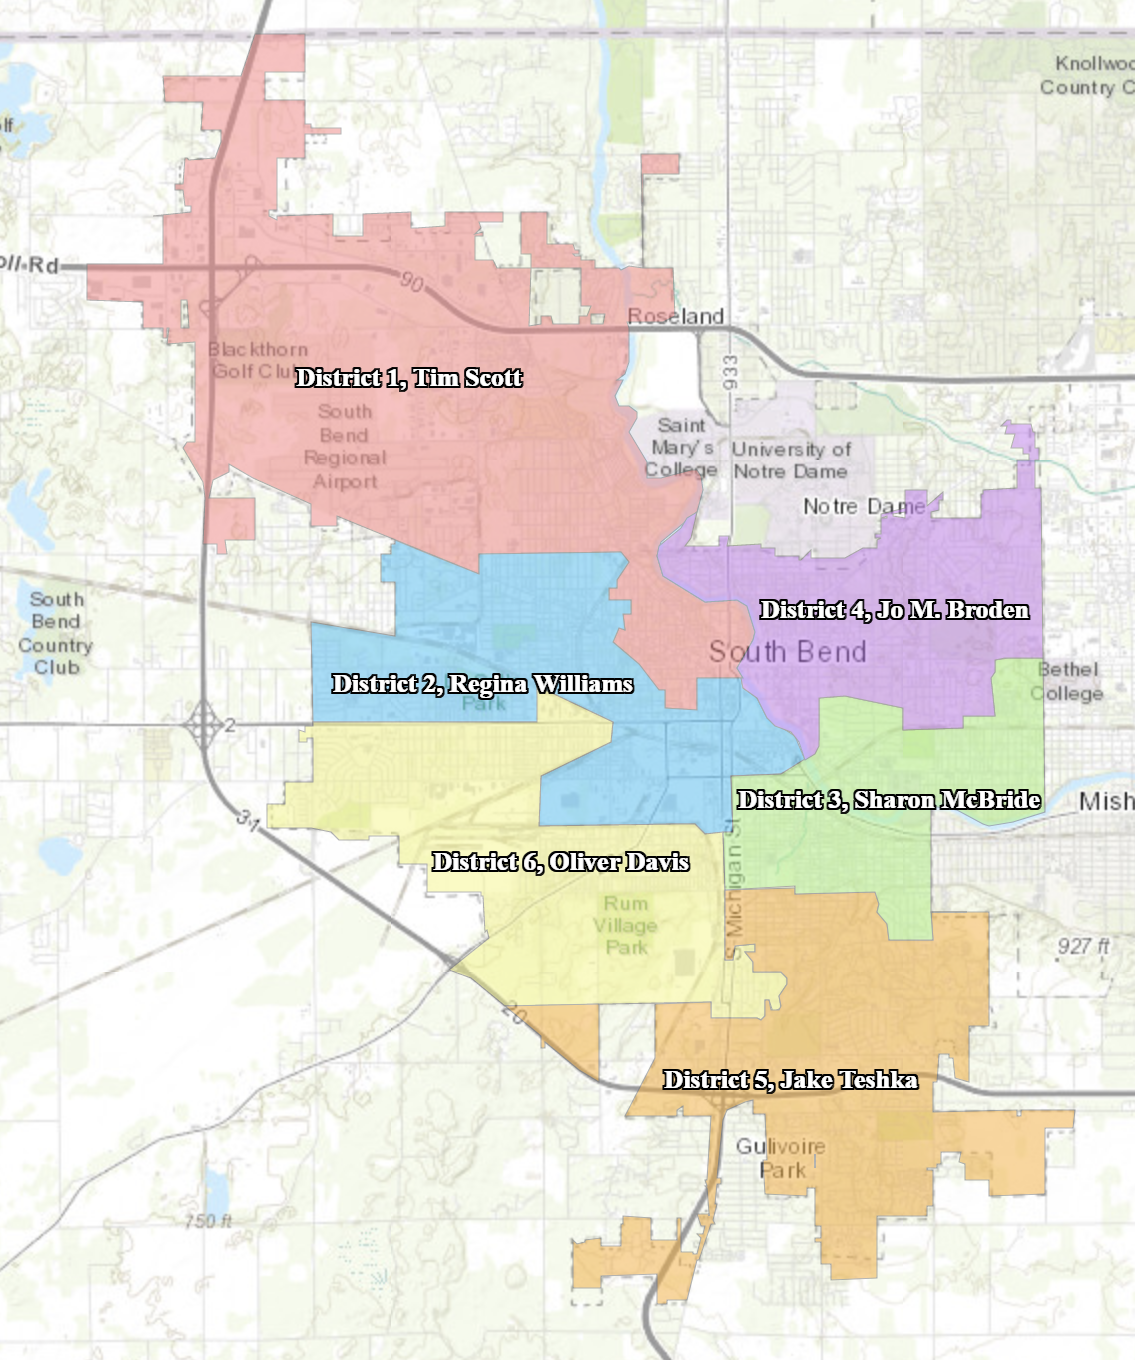 Map of South Bend's Common Council Districts